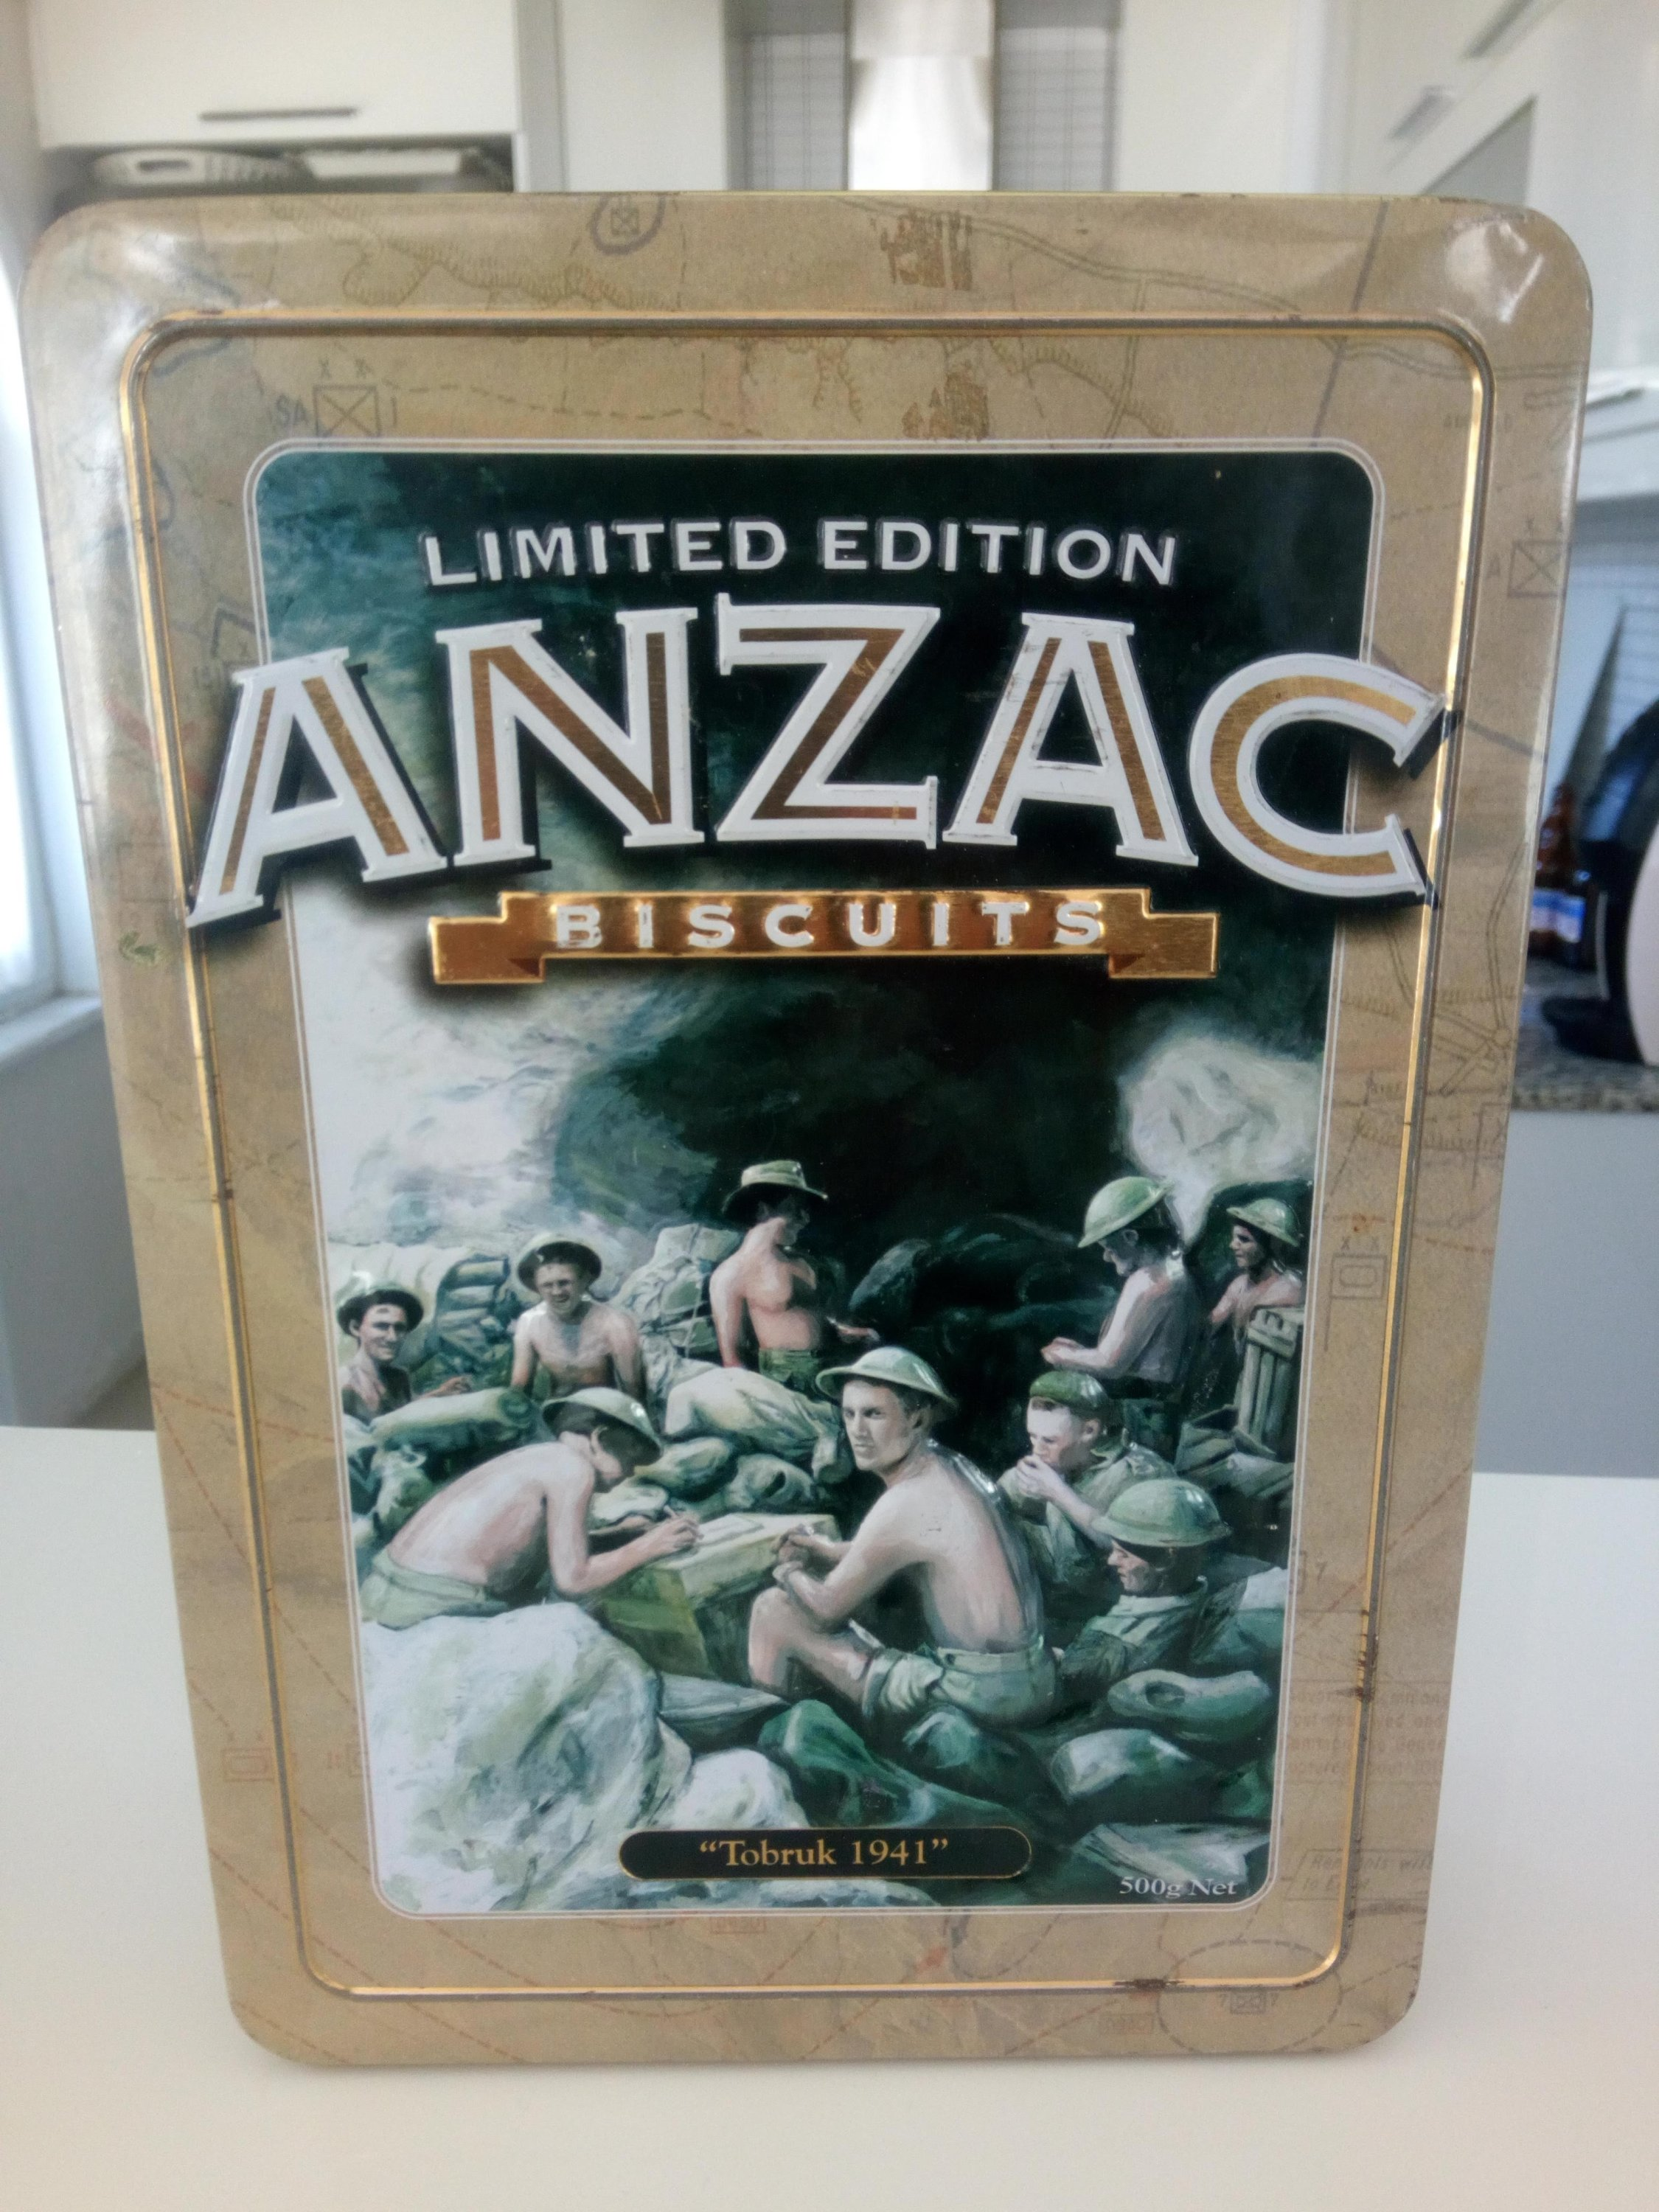 You can make Anzac biscuits, which came about as the result of soldiers using their imagination to improve their diet during the Gallipoli campaign, at home on Anzac Day.